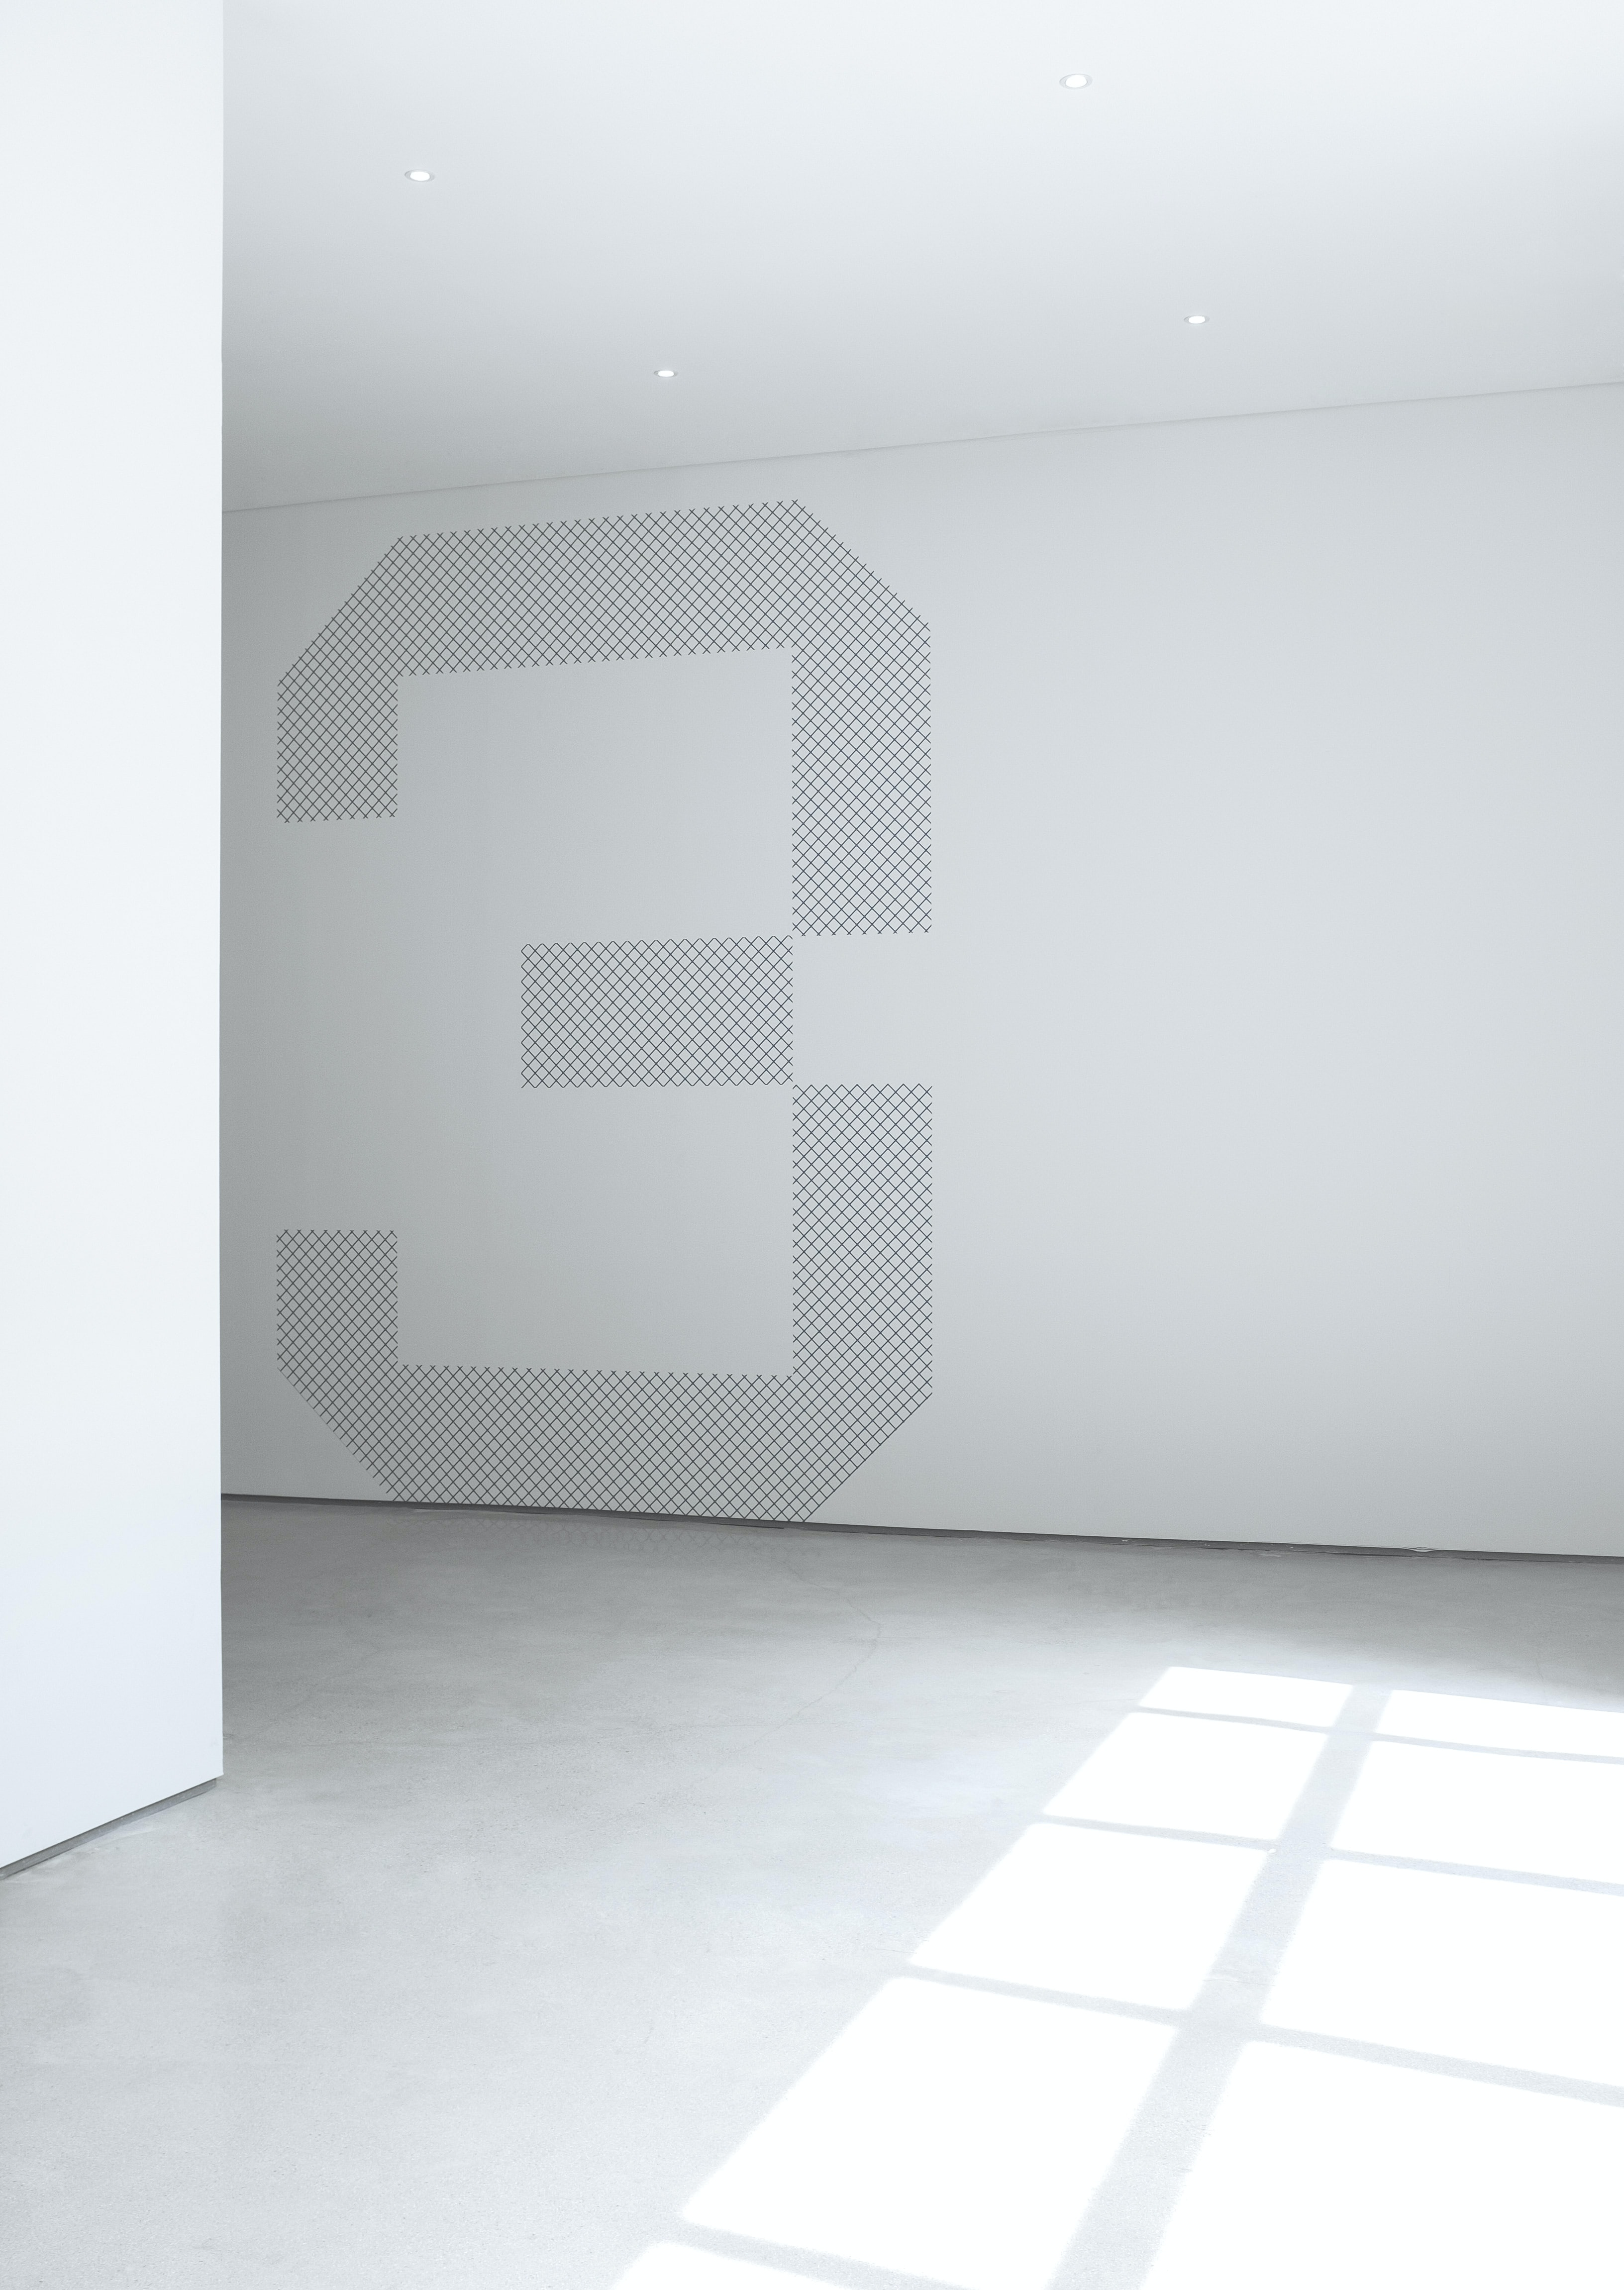 A large number three painted on a white wall in an empty room